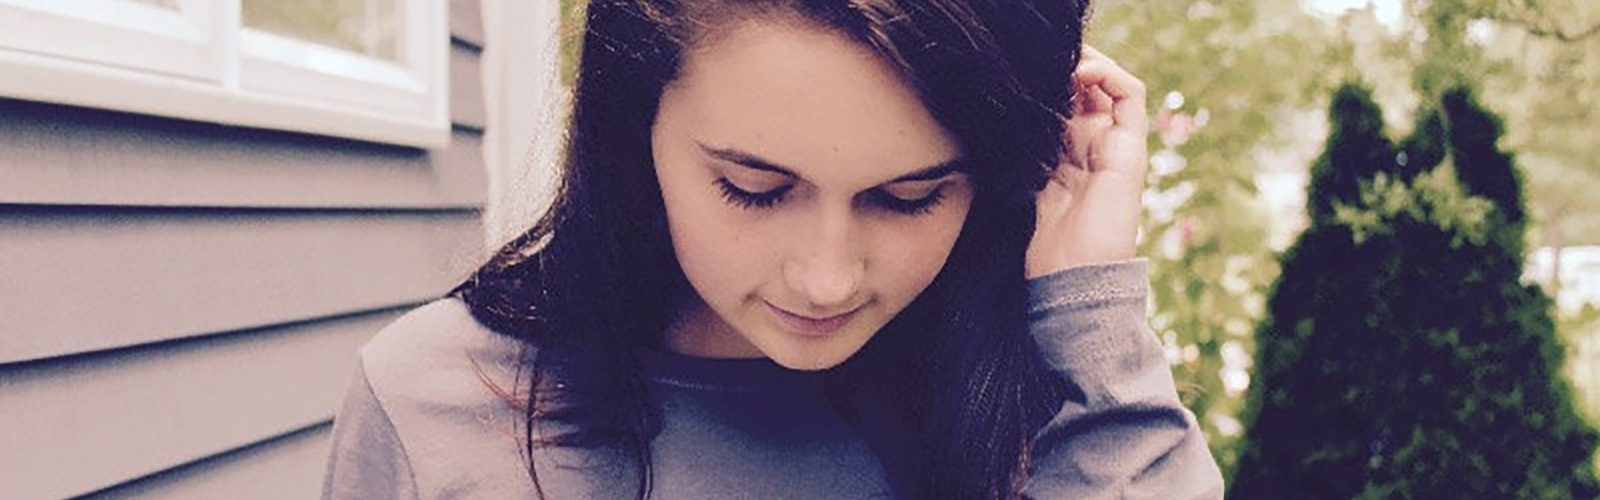 Between You & Me: Sydney Guerrette talks about her pro-life song Carry On